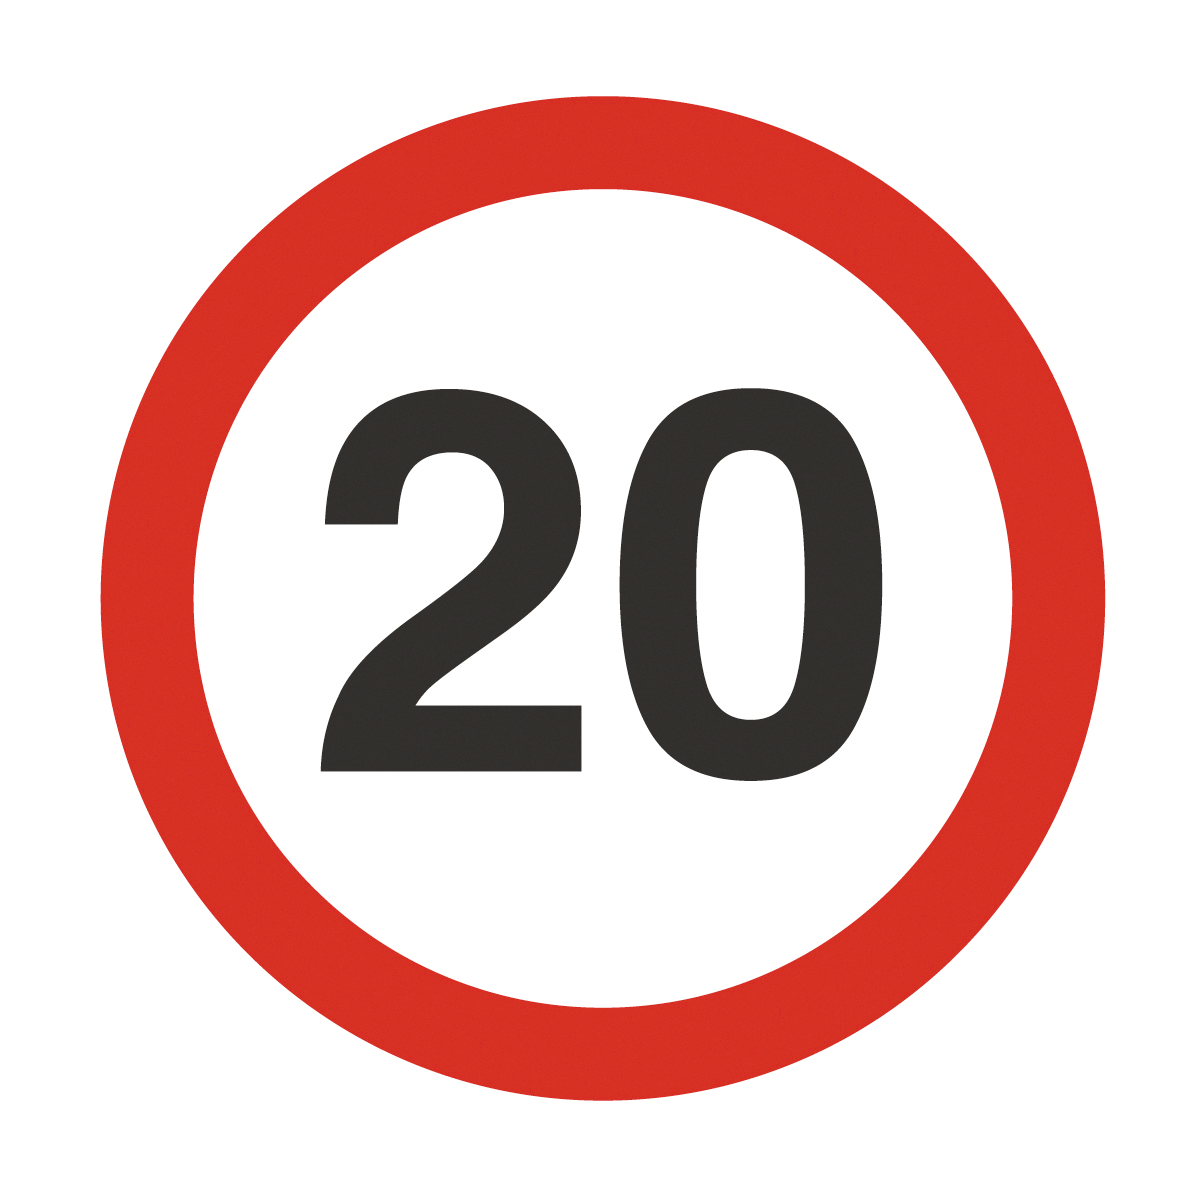 20 Mph Safety Sign.